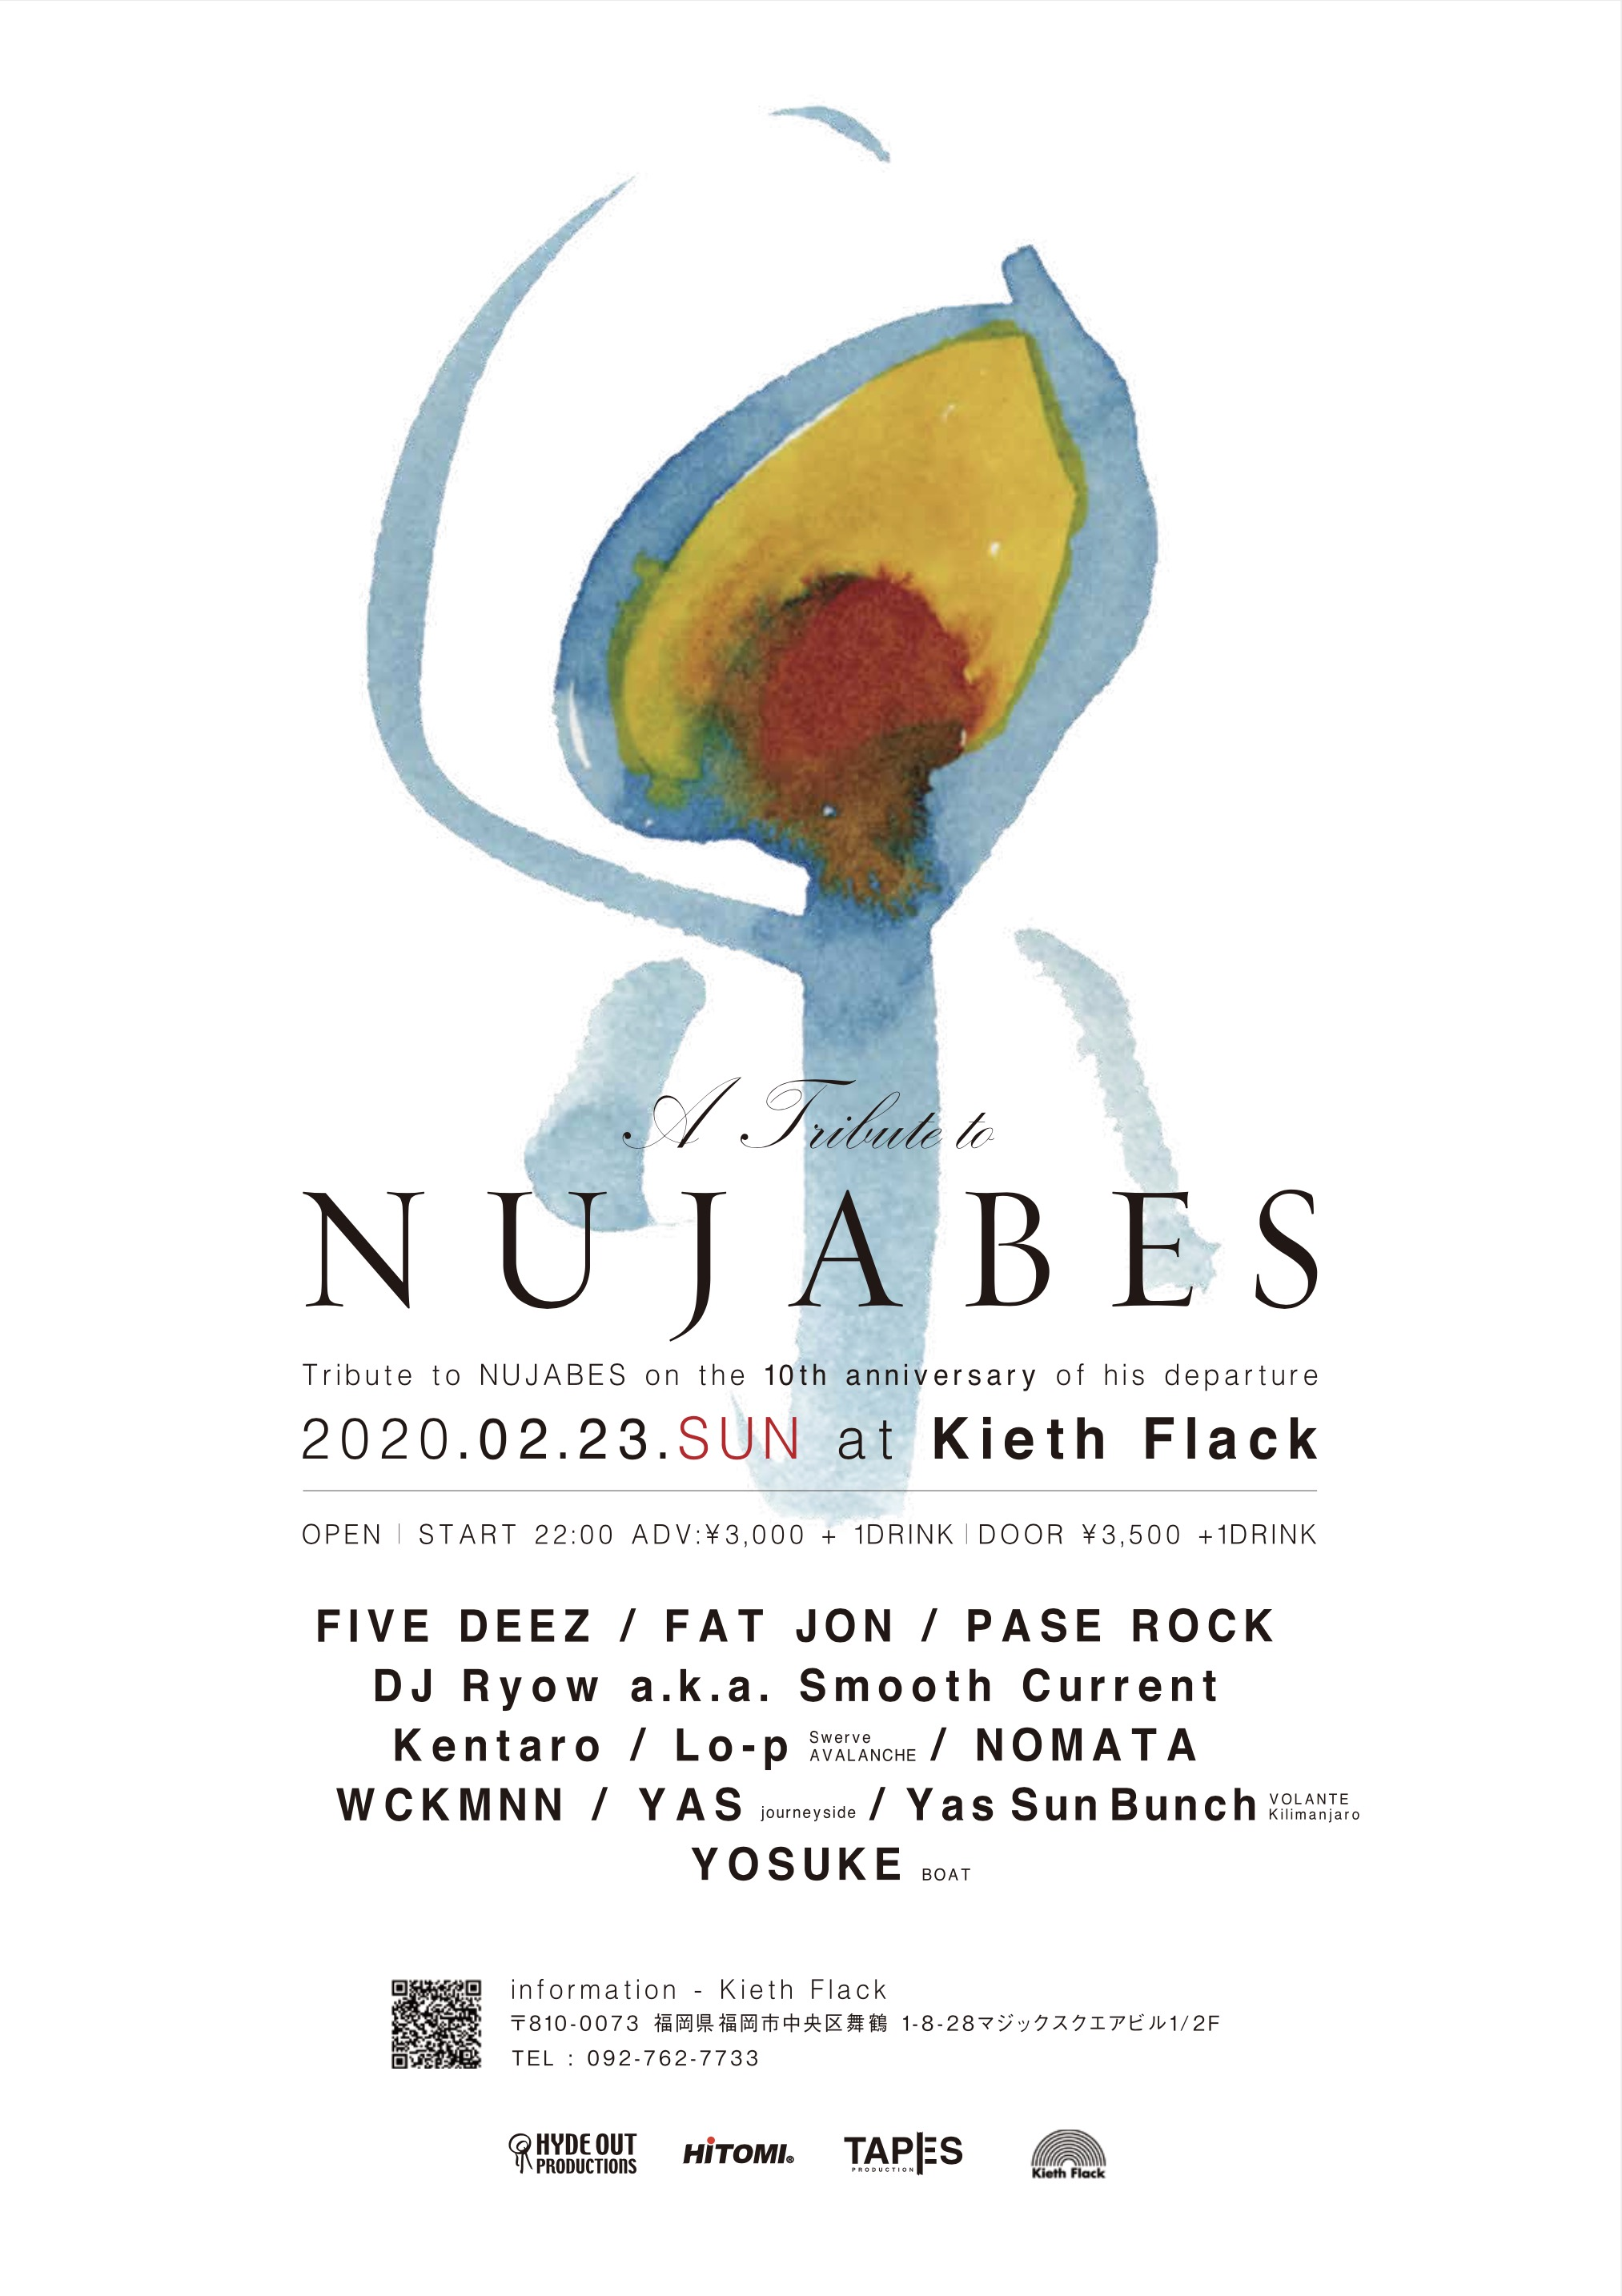 A TRIBUTE TO NUJABES Tribute to Nujabes on the 10th anniversary of his departure